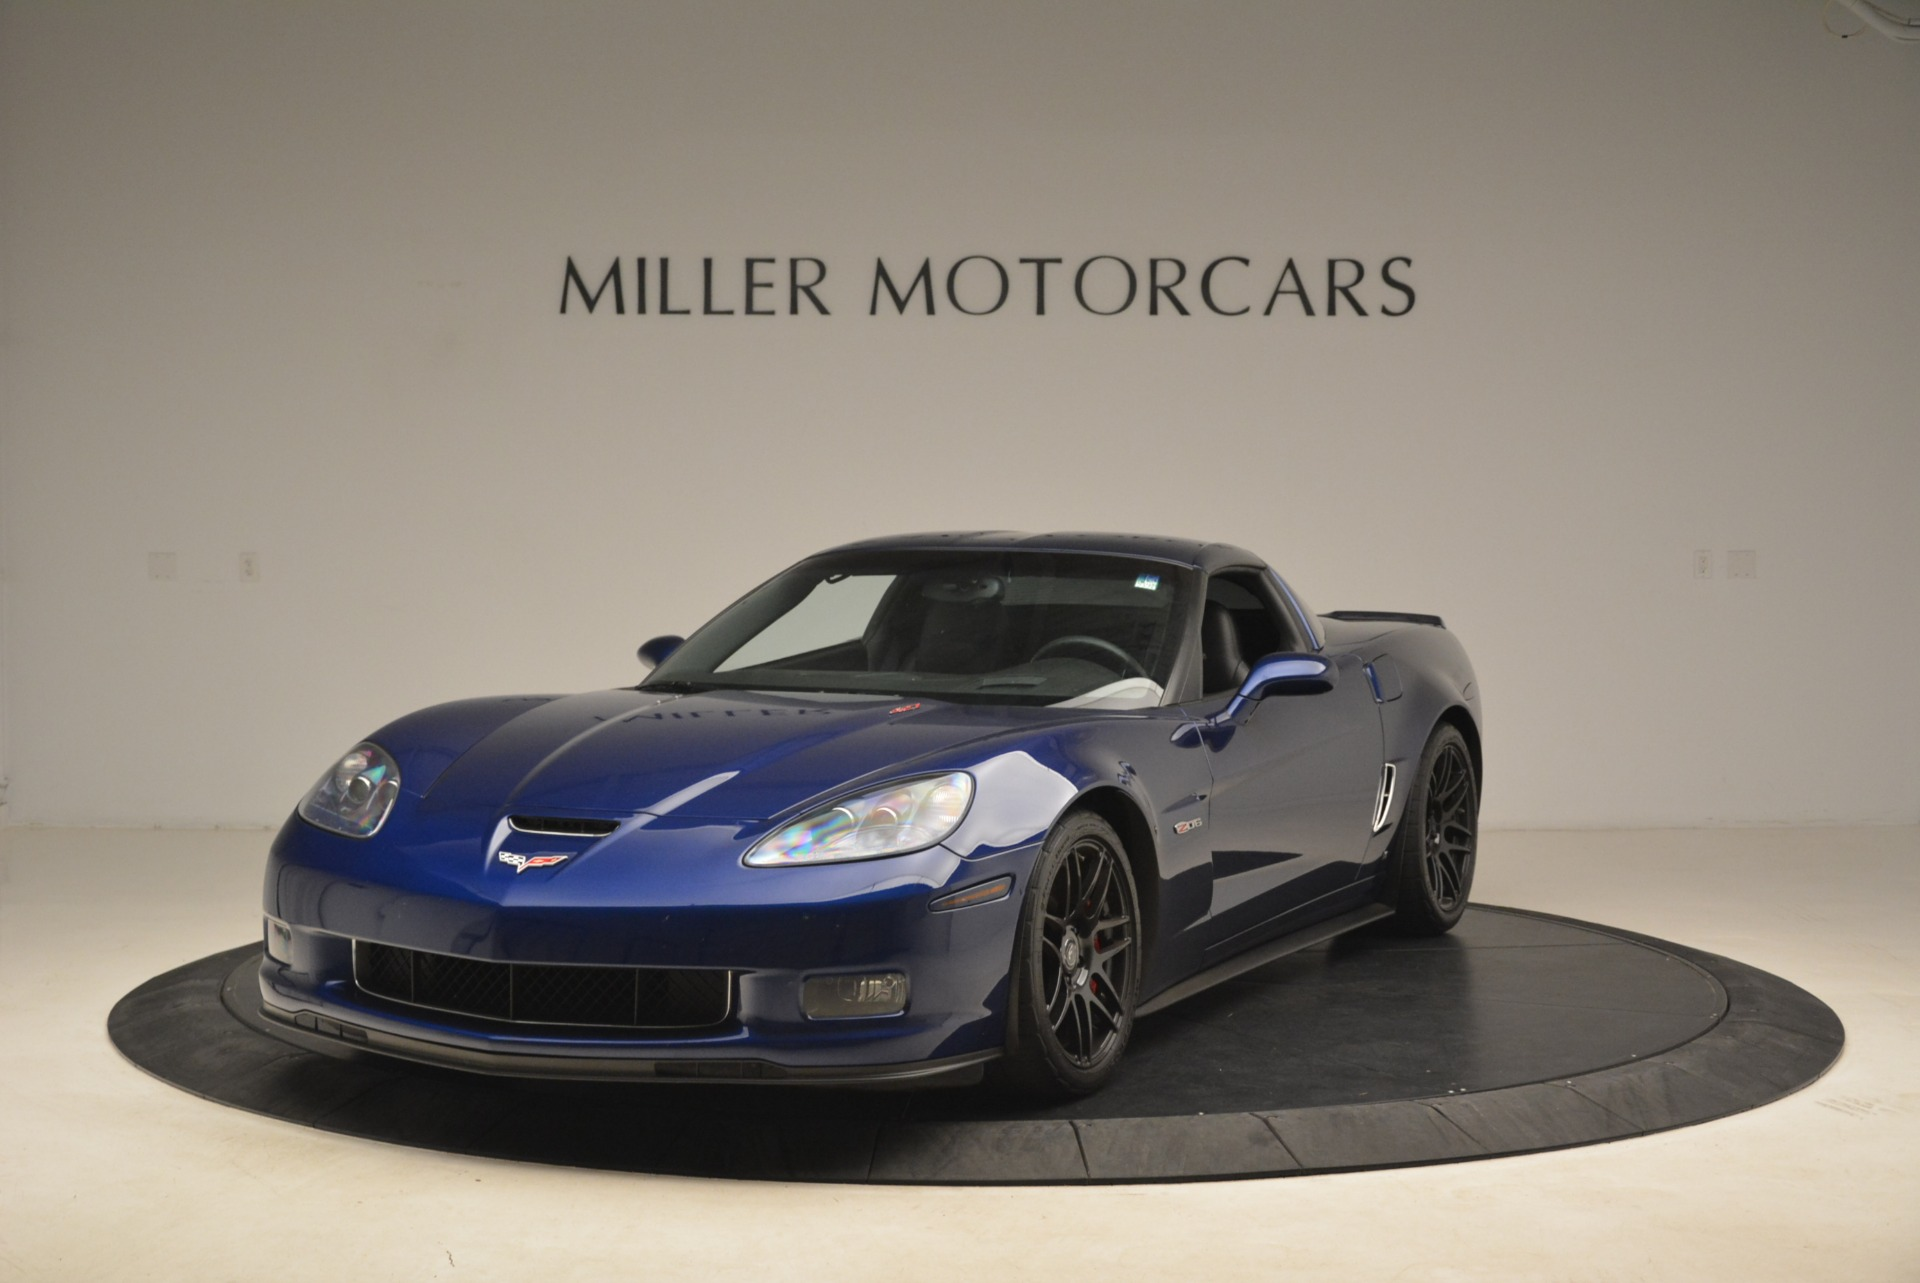 Used 2006 Chevrolet Corvette Z06 for sale Sold at Aston Martin of Greenwich in Greenwich CT 06830 1